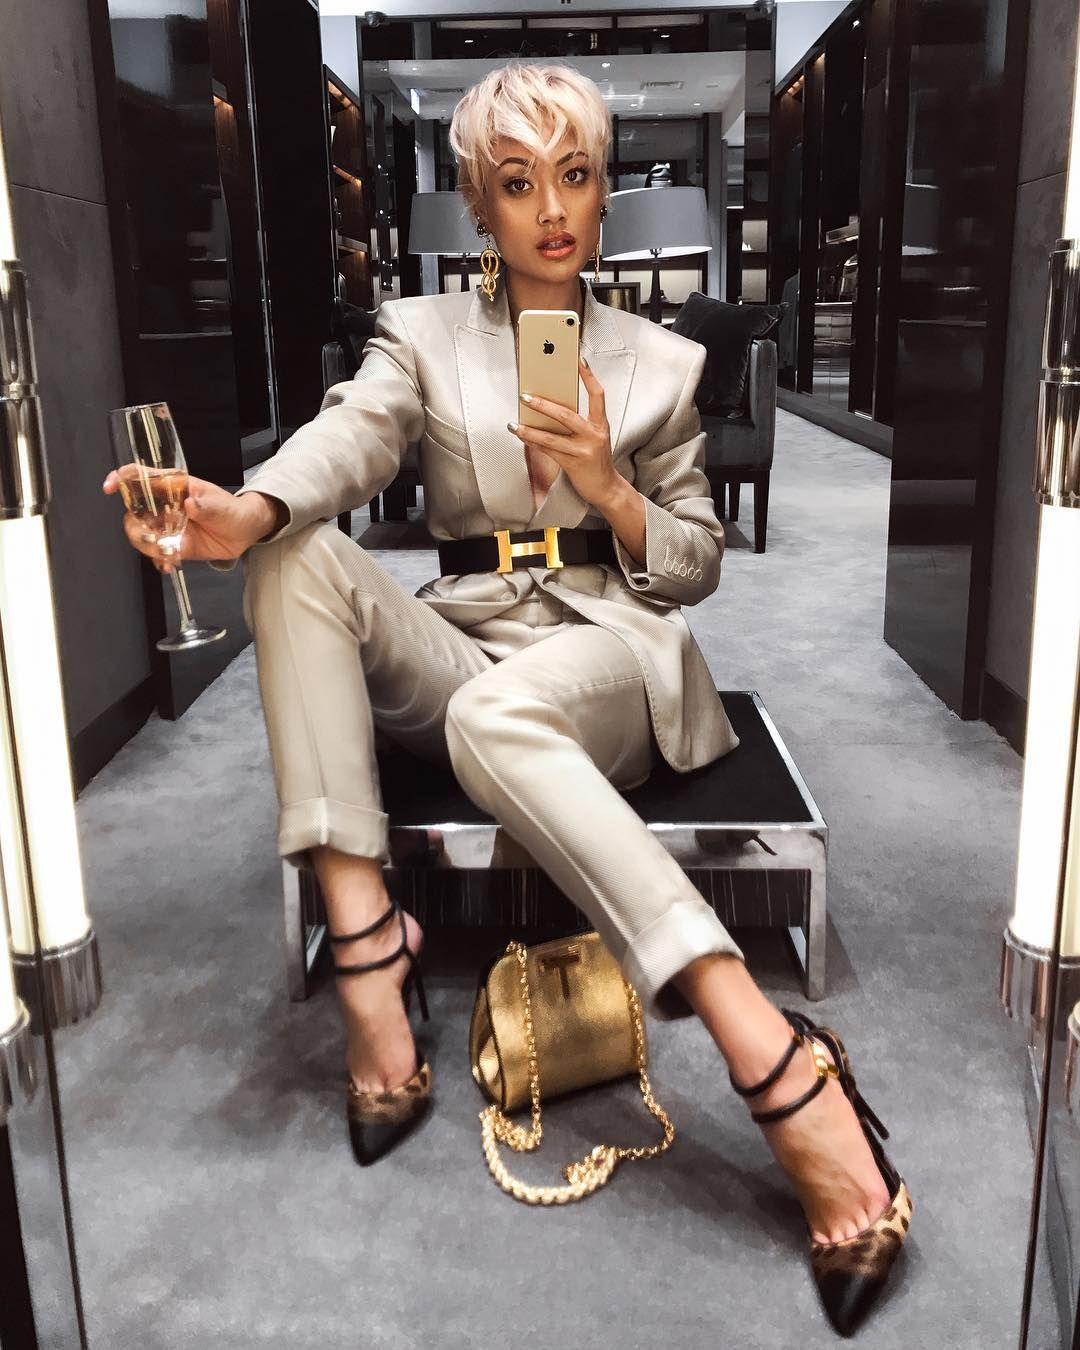 ac7fbb7de I don't pop molly I rock Tom Ford ✨ @tomford suit, purse & heels via  @harroldsaus